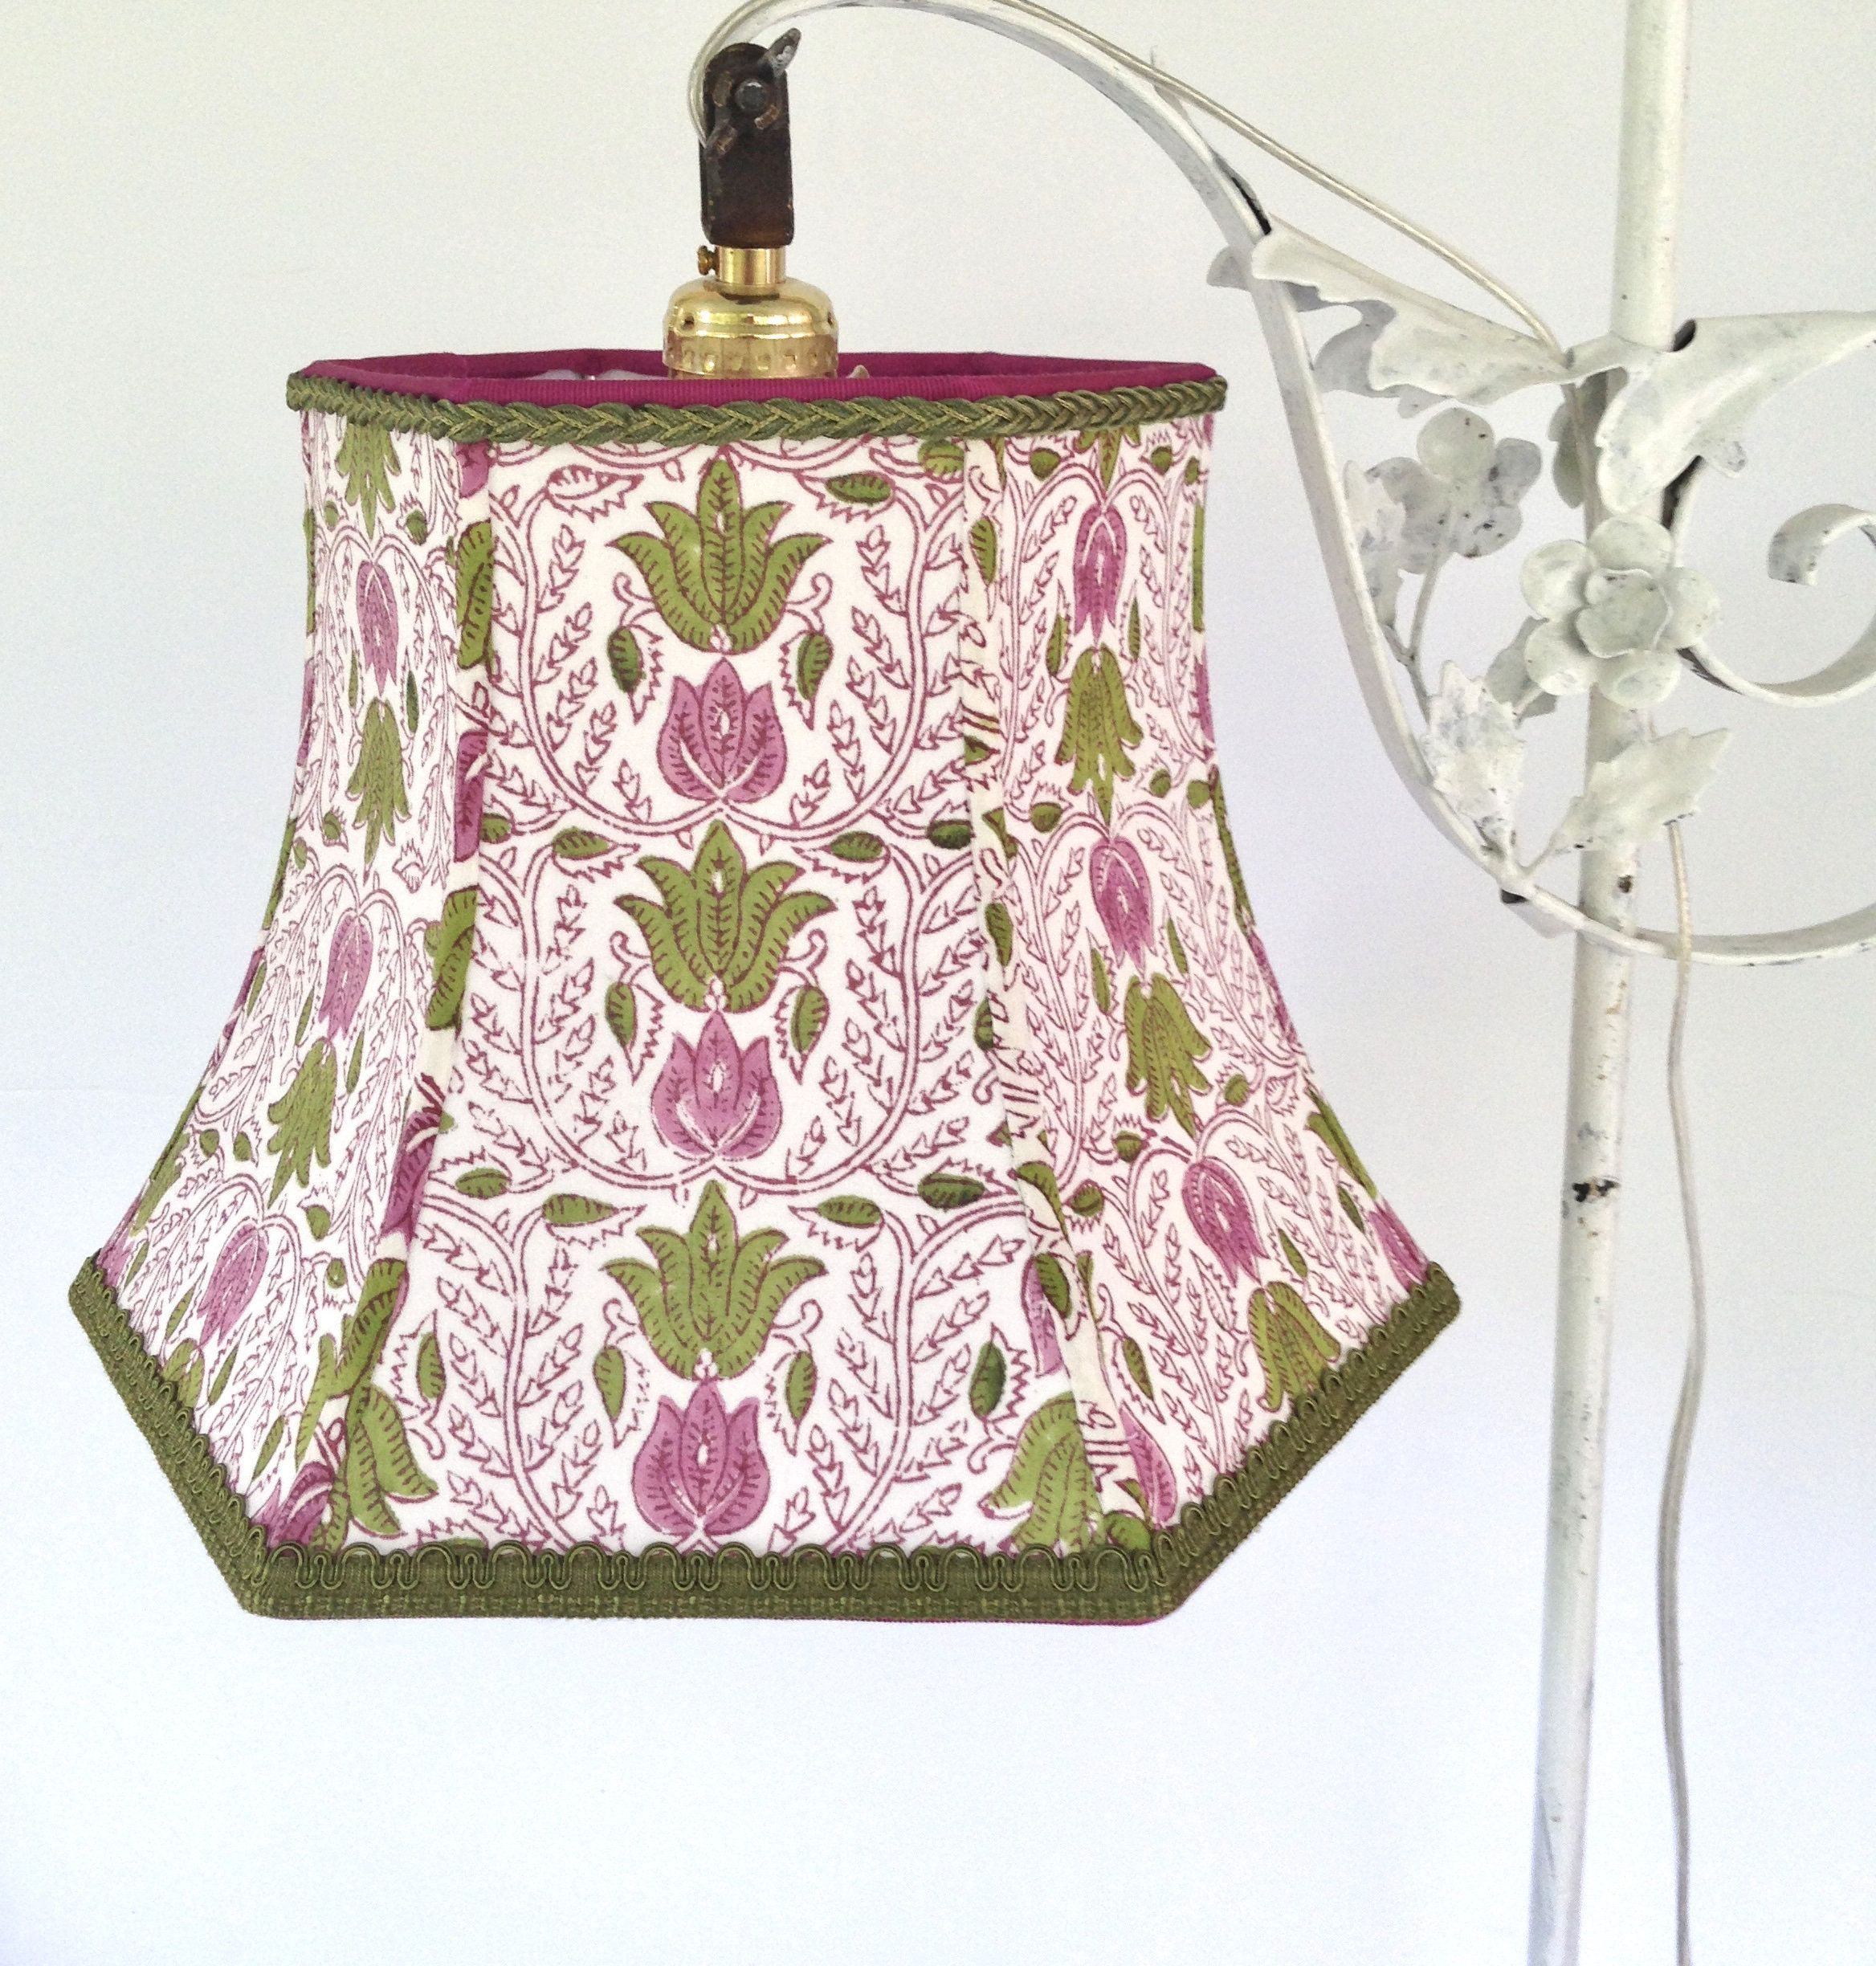 India Block Print Bridge Lampshade Uno